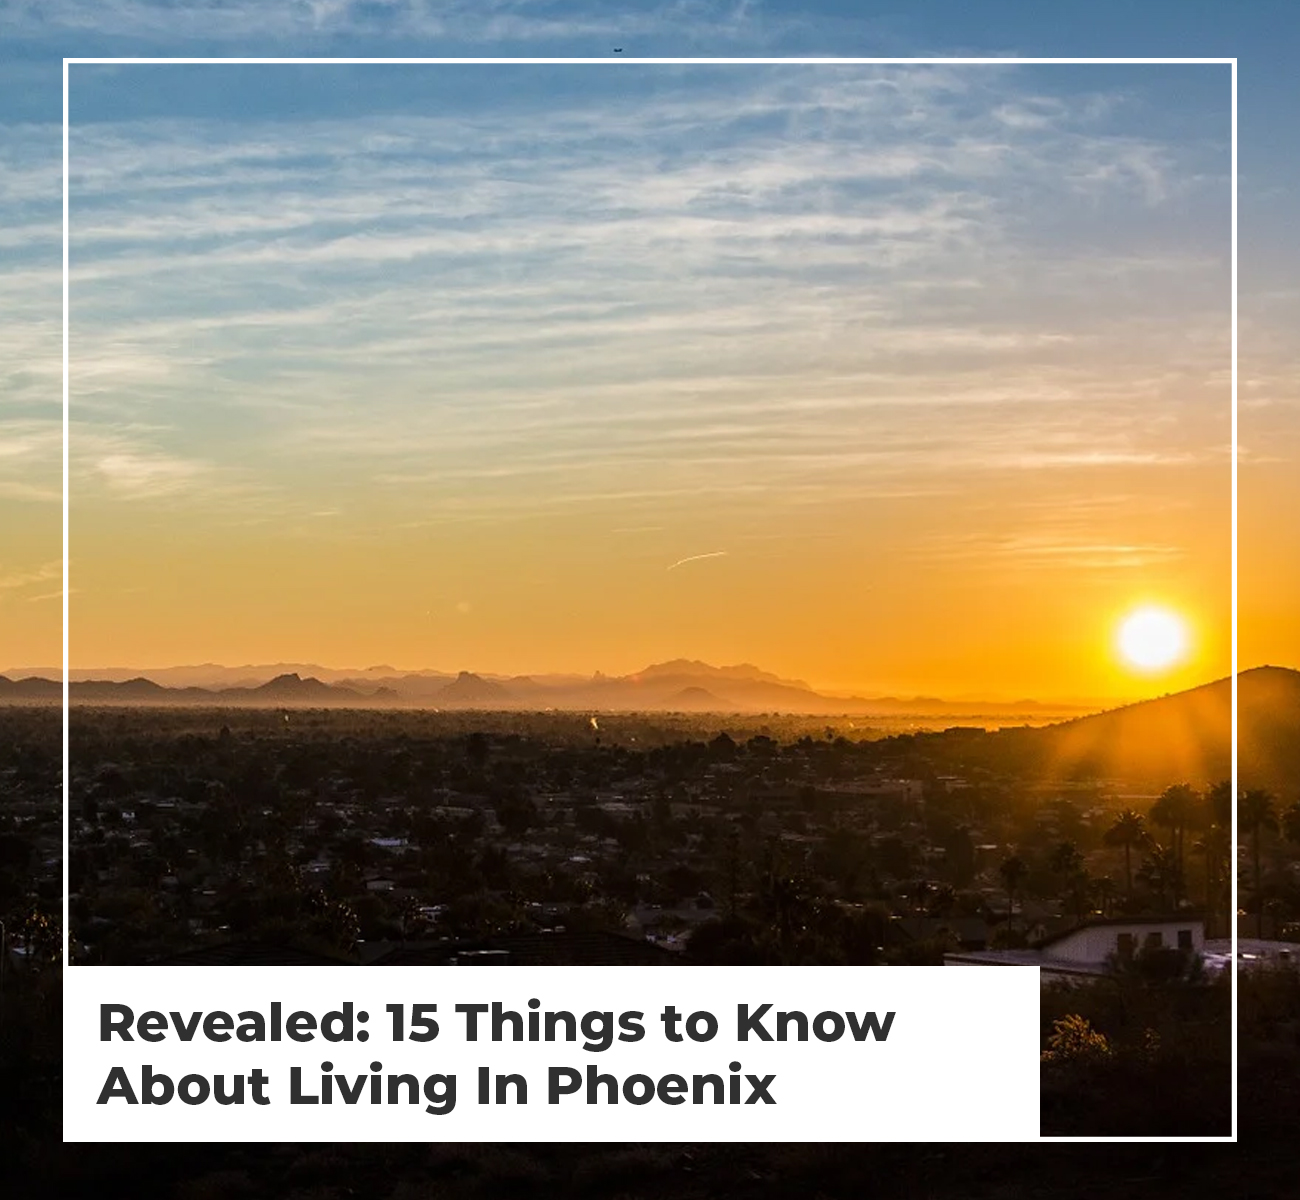 15 Things To KnowLiving in Phoenix